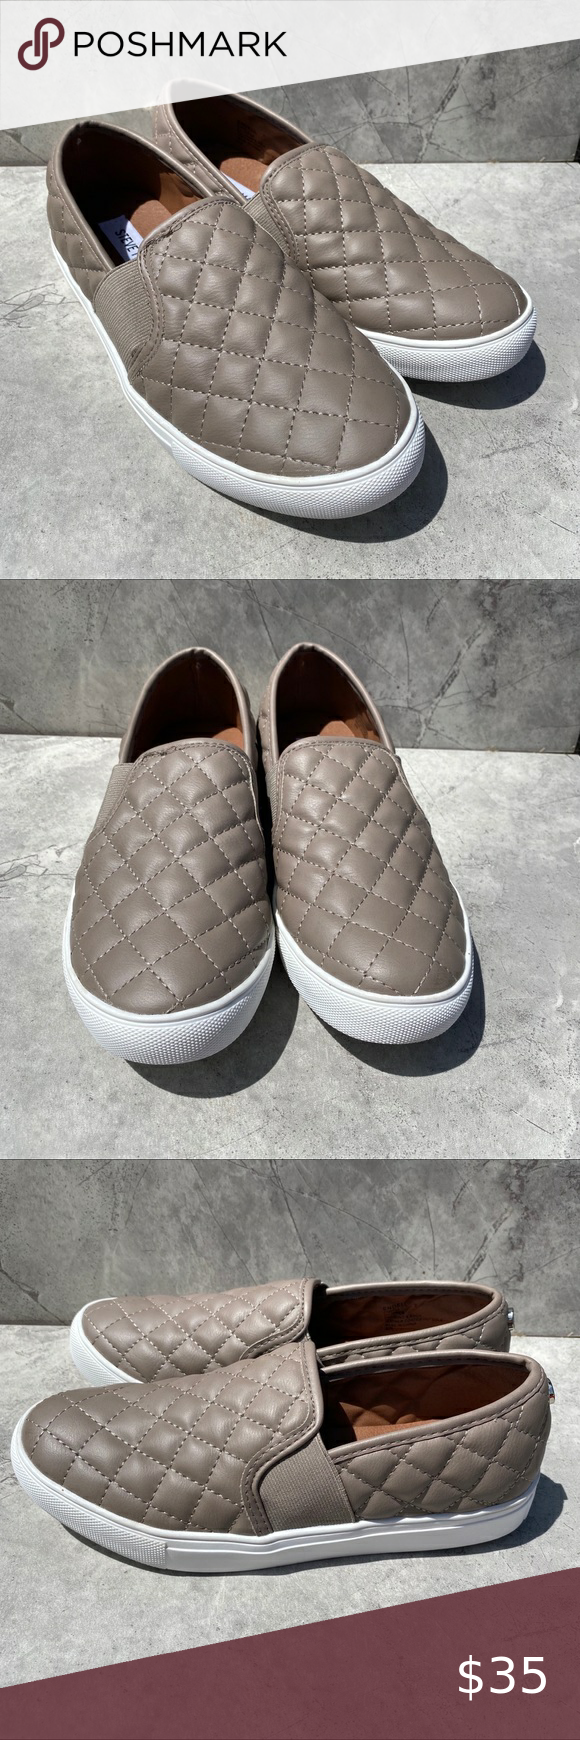 EUC Steve Madden Quilted Loafers